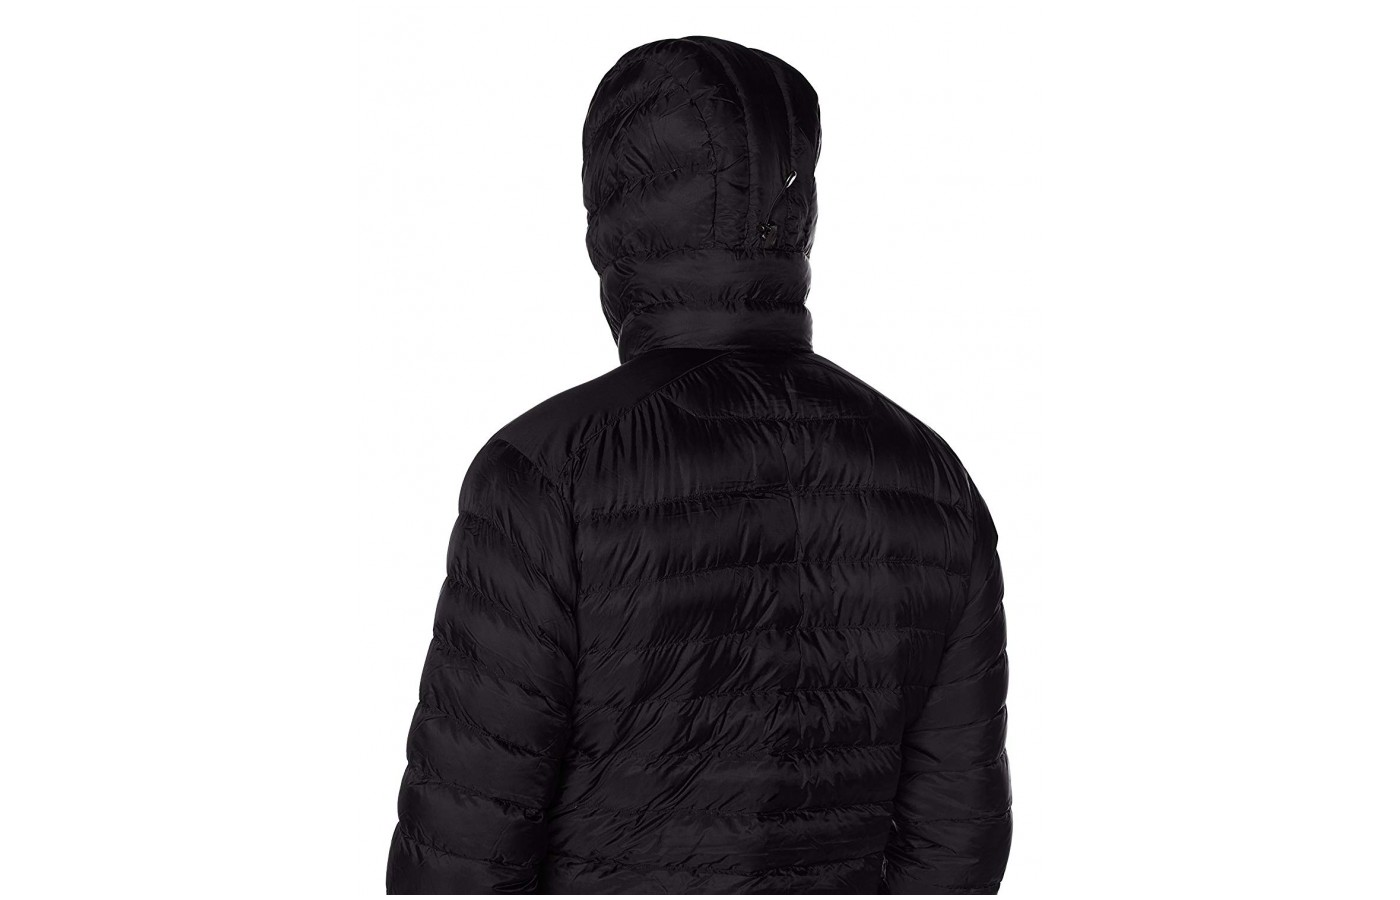 Cerium LT has an insulated StormHood for warmth